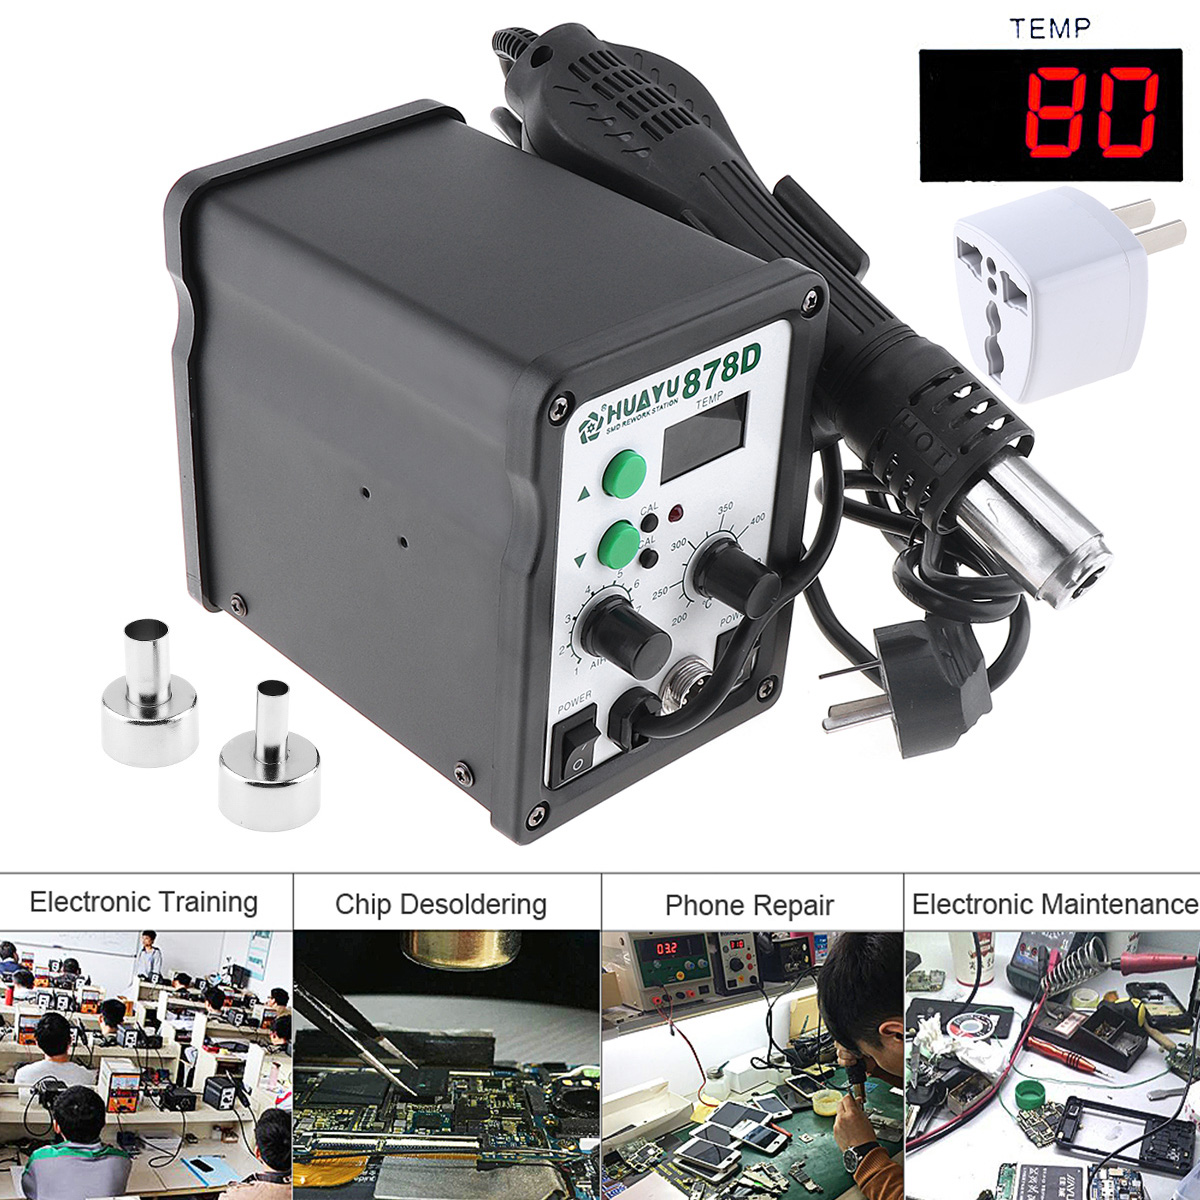 Multifunction 110V LCD Digital Display Hot-Air Desoldering Station with Electric Soldering Iron and Soldering Iron StentMultifunction 110V LCD Digital Display Hot-Air Desoldering Station with Electric Soldering Iron and Soldering Iron Stent